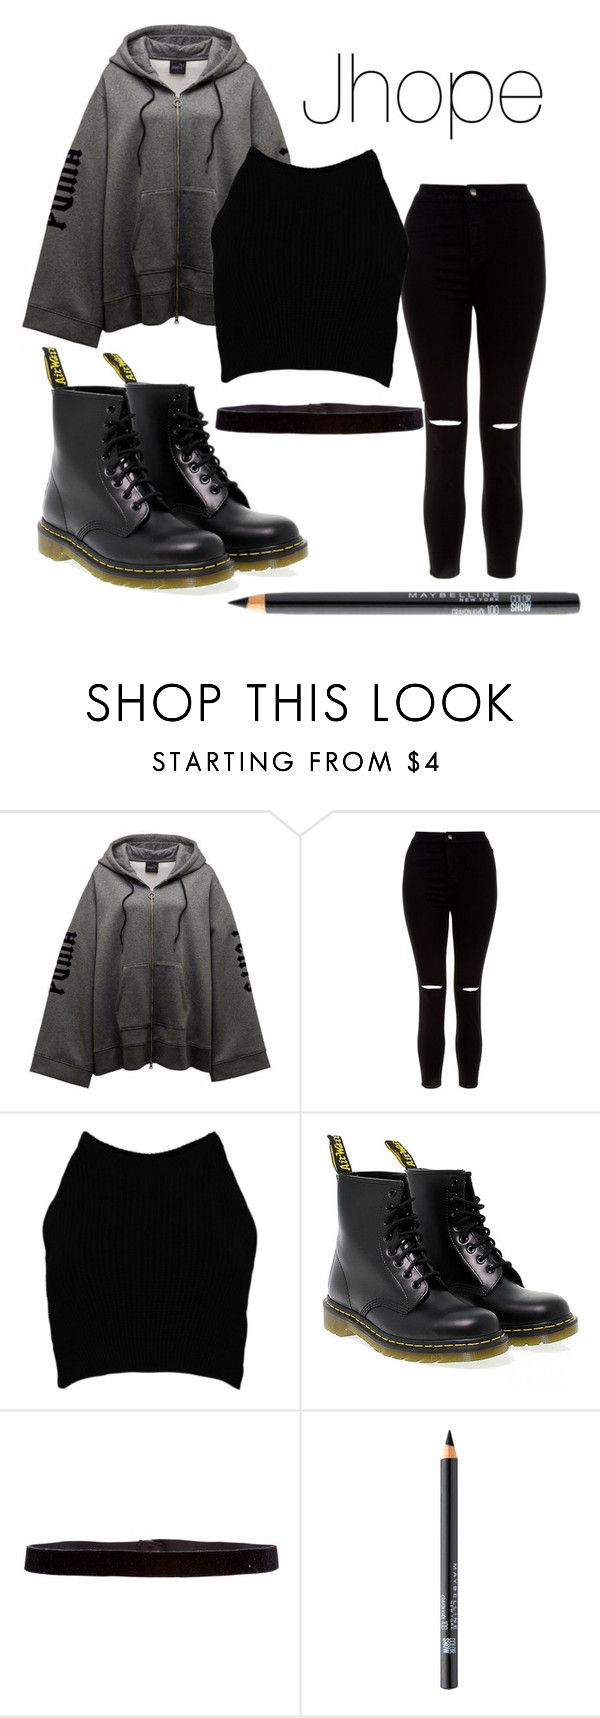 """Jhope I need u mv inspired"" by btsreactions ❤ liked on Polyvore featuring New Look, Boohoo, Dr. Martens, Steve Madden and Maybelline"